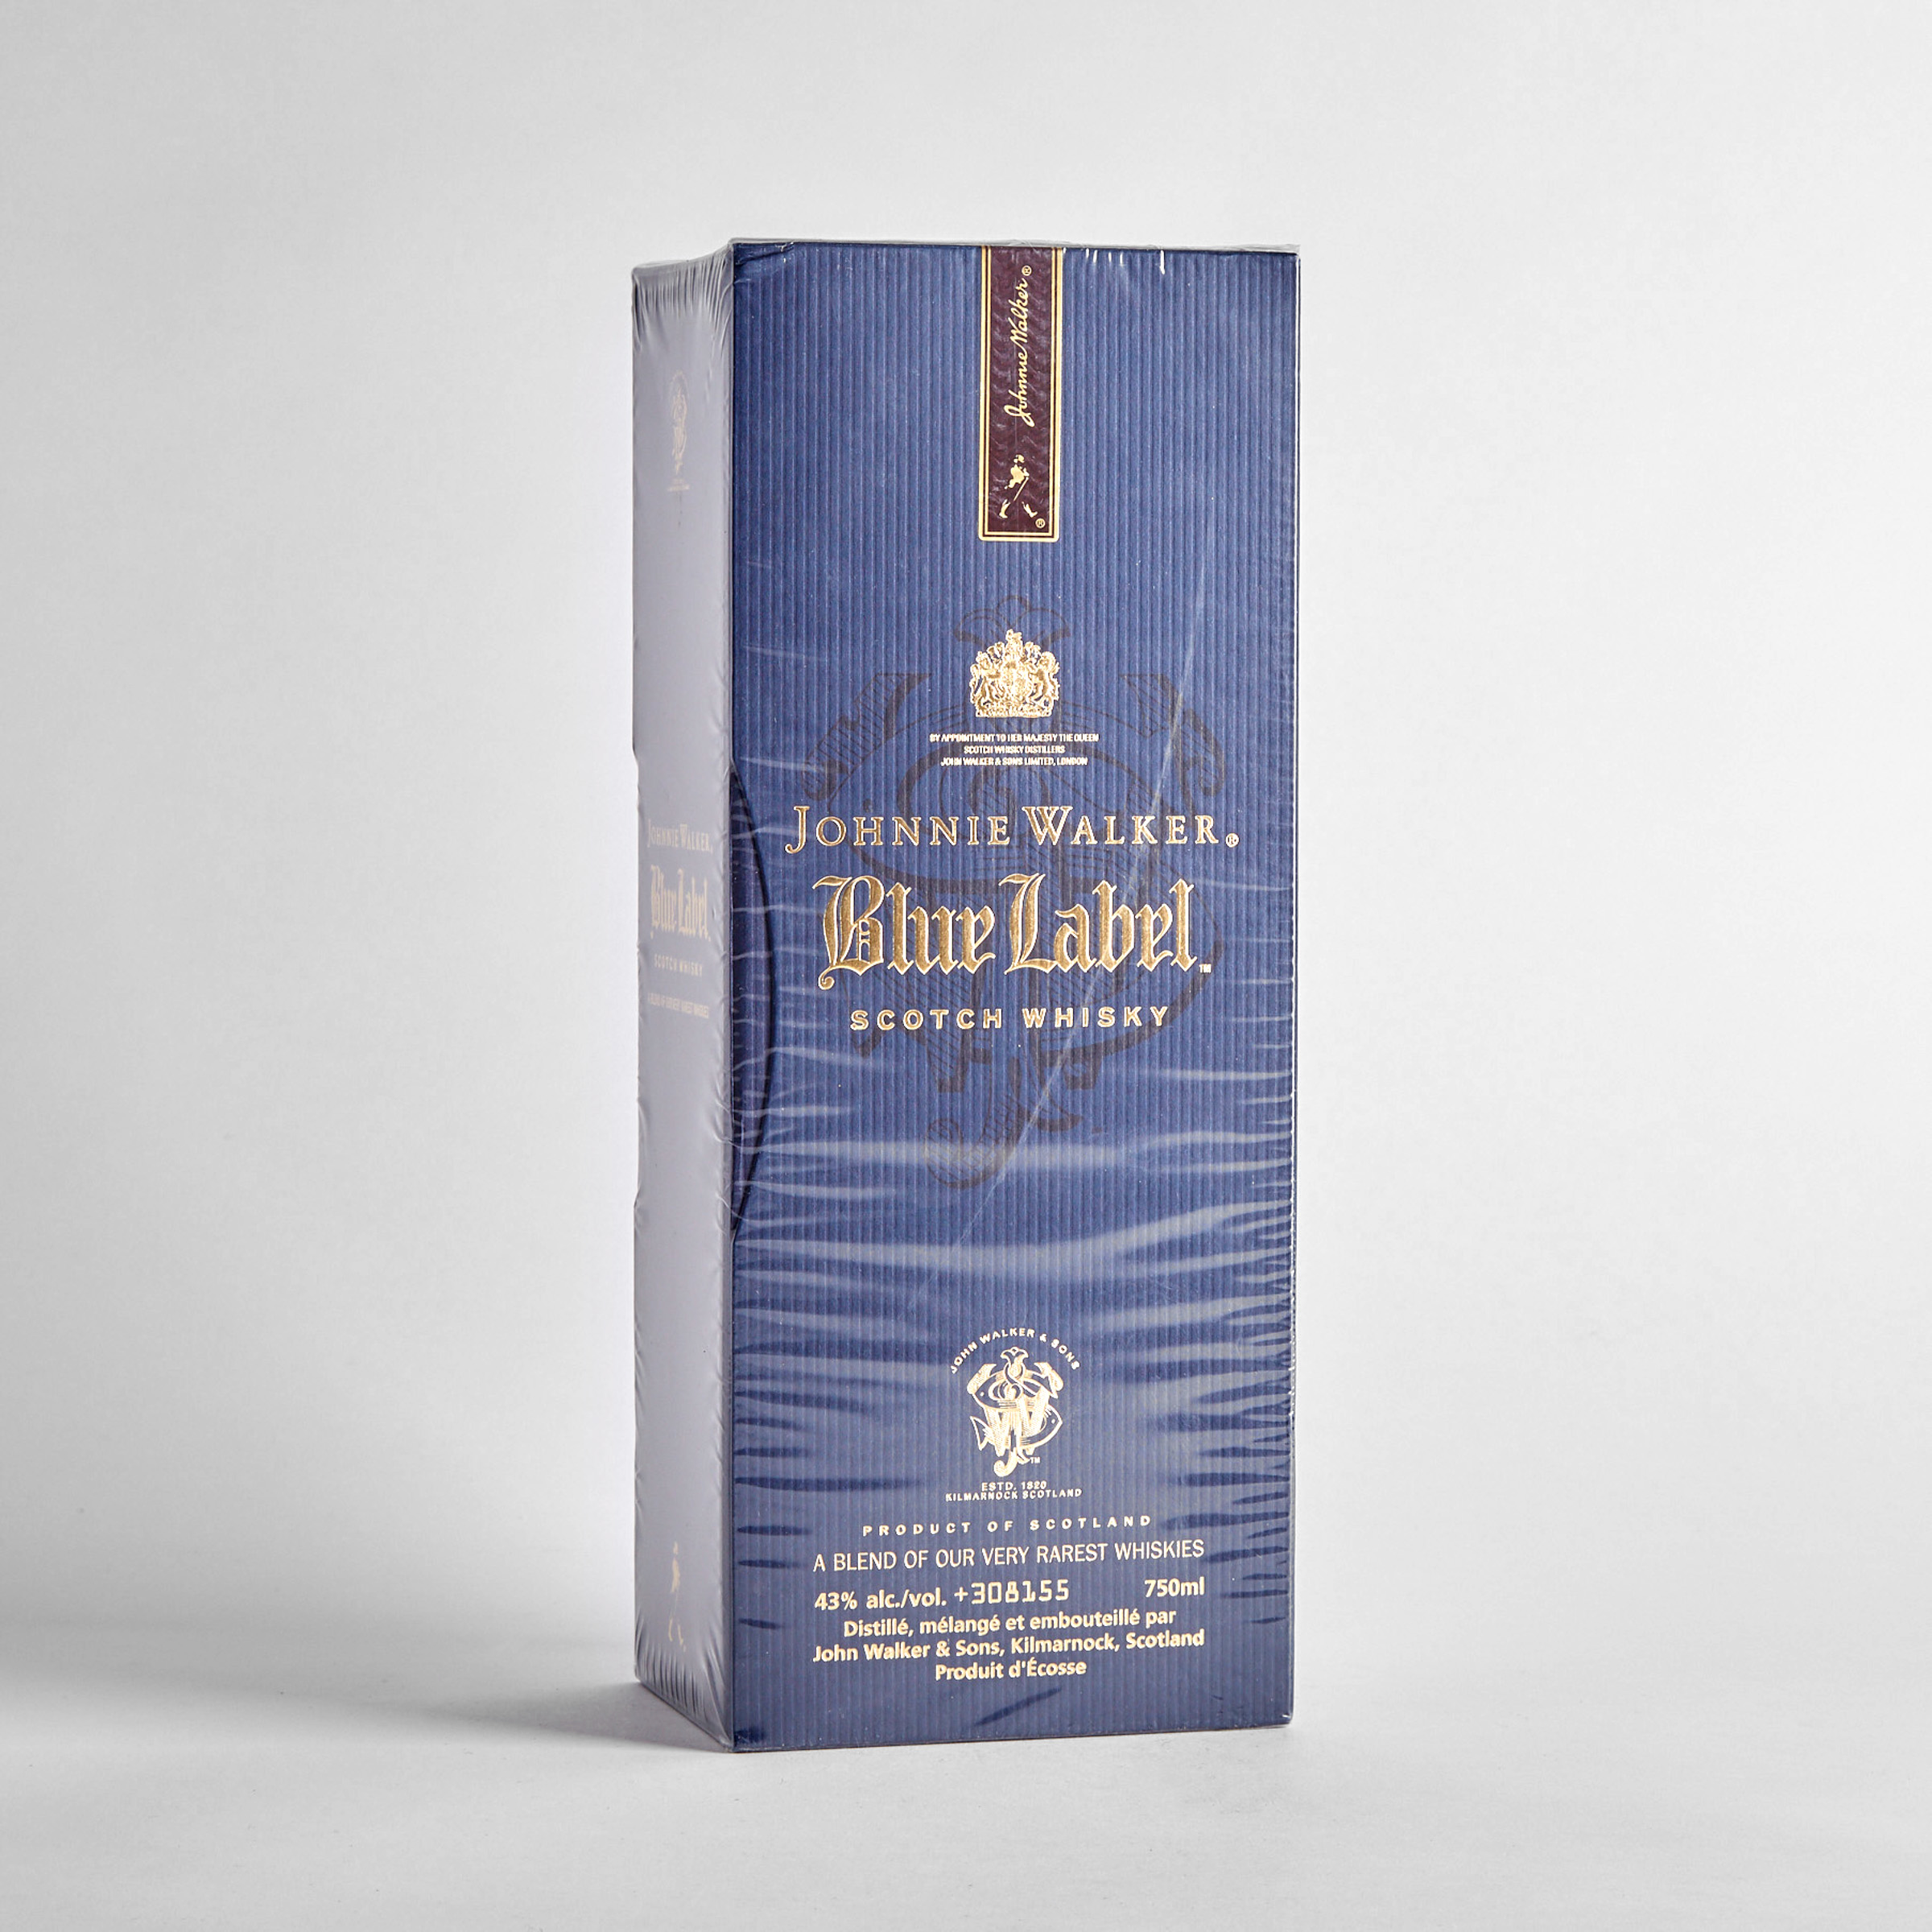 JOHNNIE WALKER BLUE LABEL BLENDED SCOTCH WHISKY NAS (ONE 750 ML)